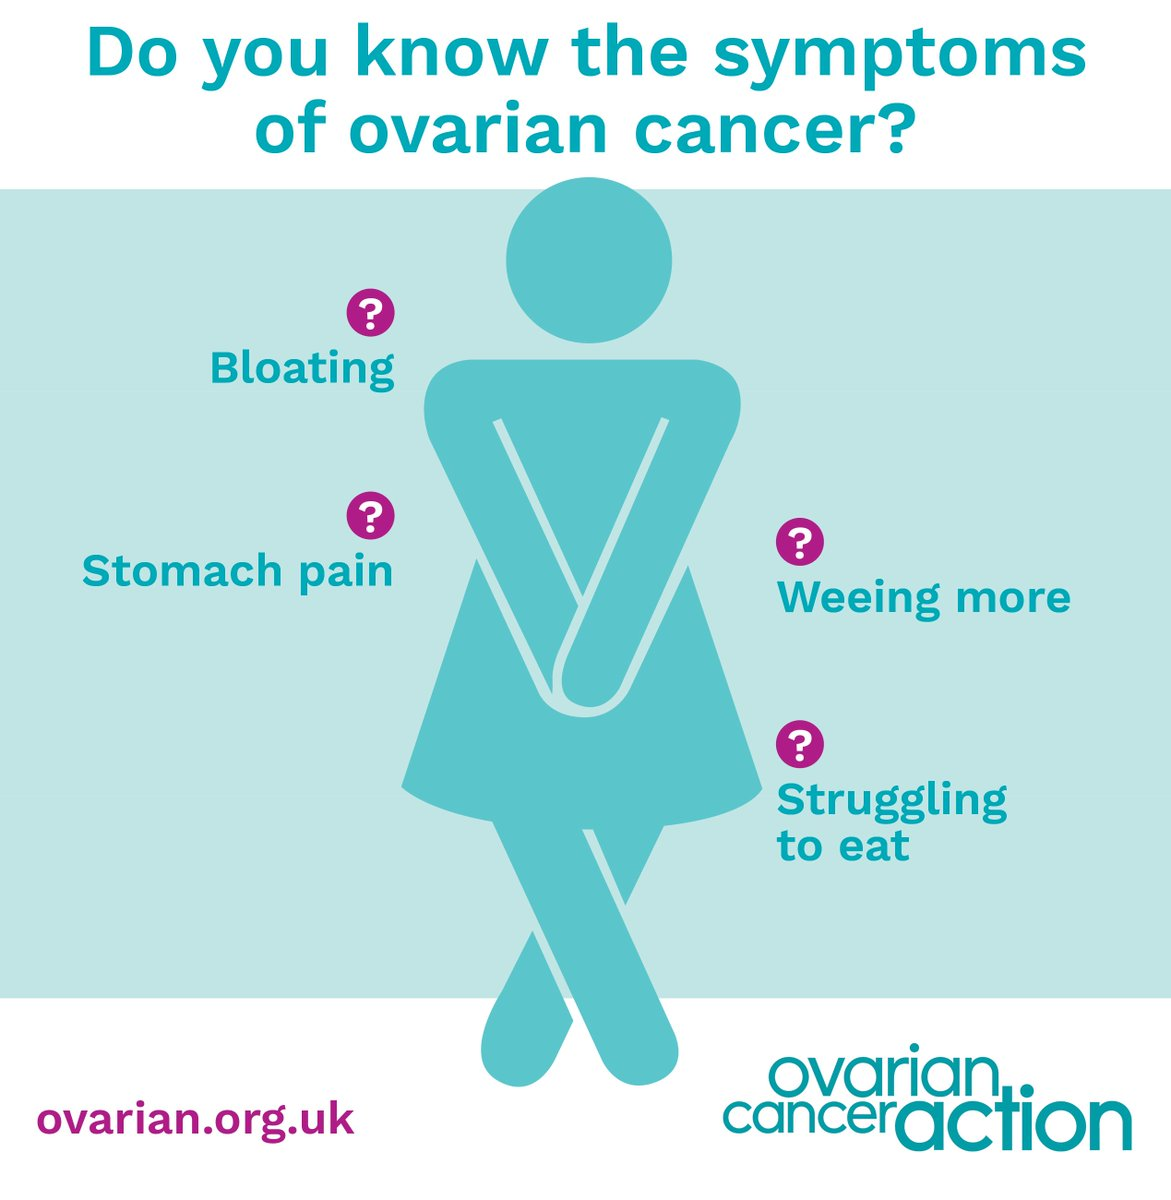 Ovarian Cancer Action On Twitter September Is Gynae Cancer Awareness Month Please Share This Infographic So That More Women Are Aware Of The Symptoms Of Ovarian Cancer Https T Co Qg0thudkre Gynaecancerawarenessmonth Https T Co Xkgay5xlri